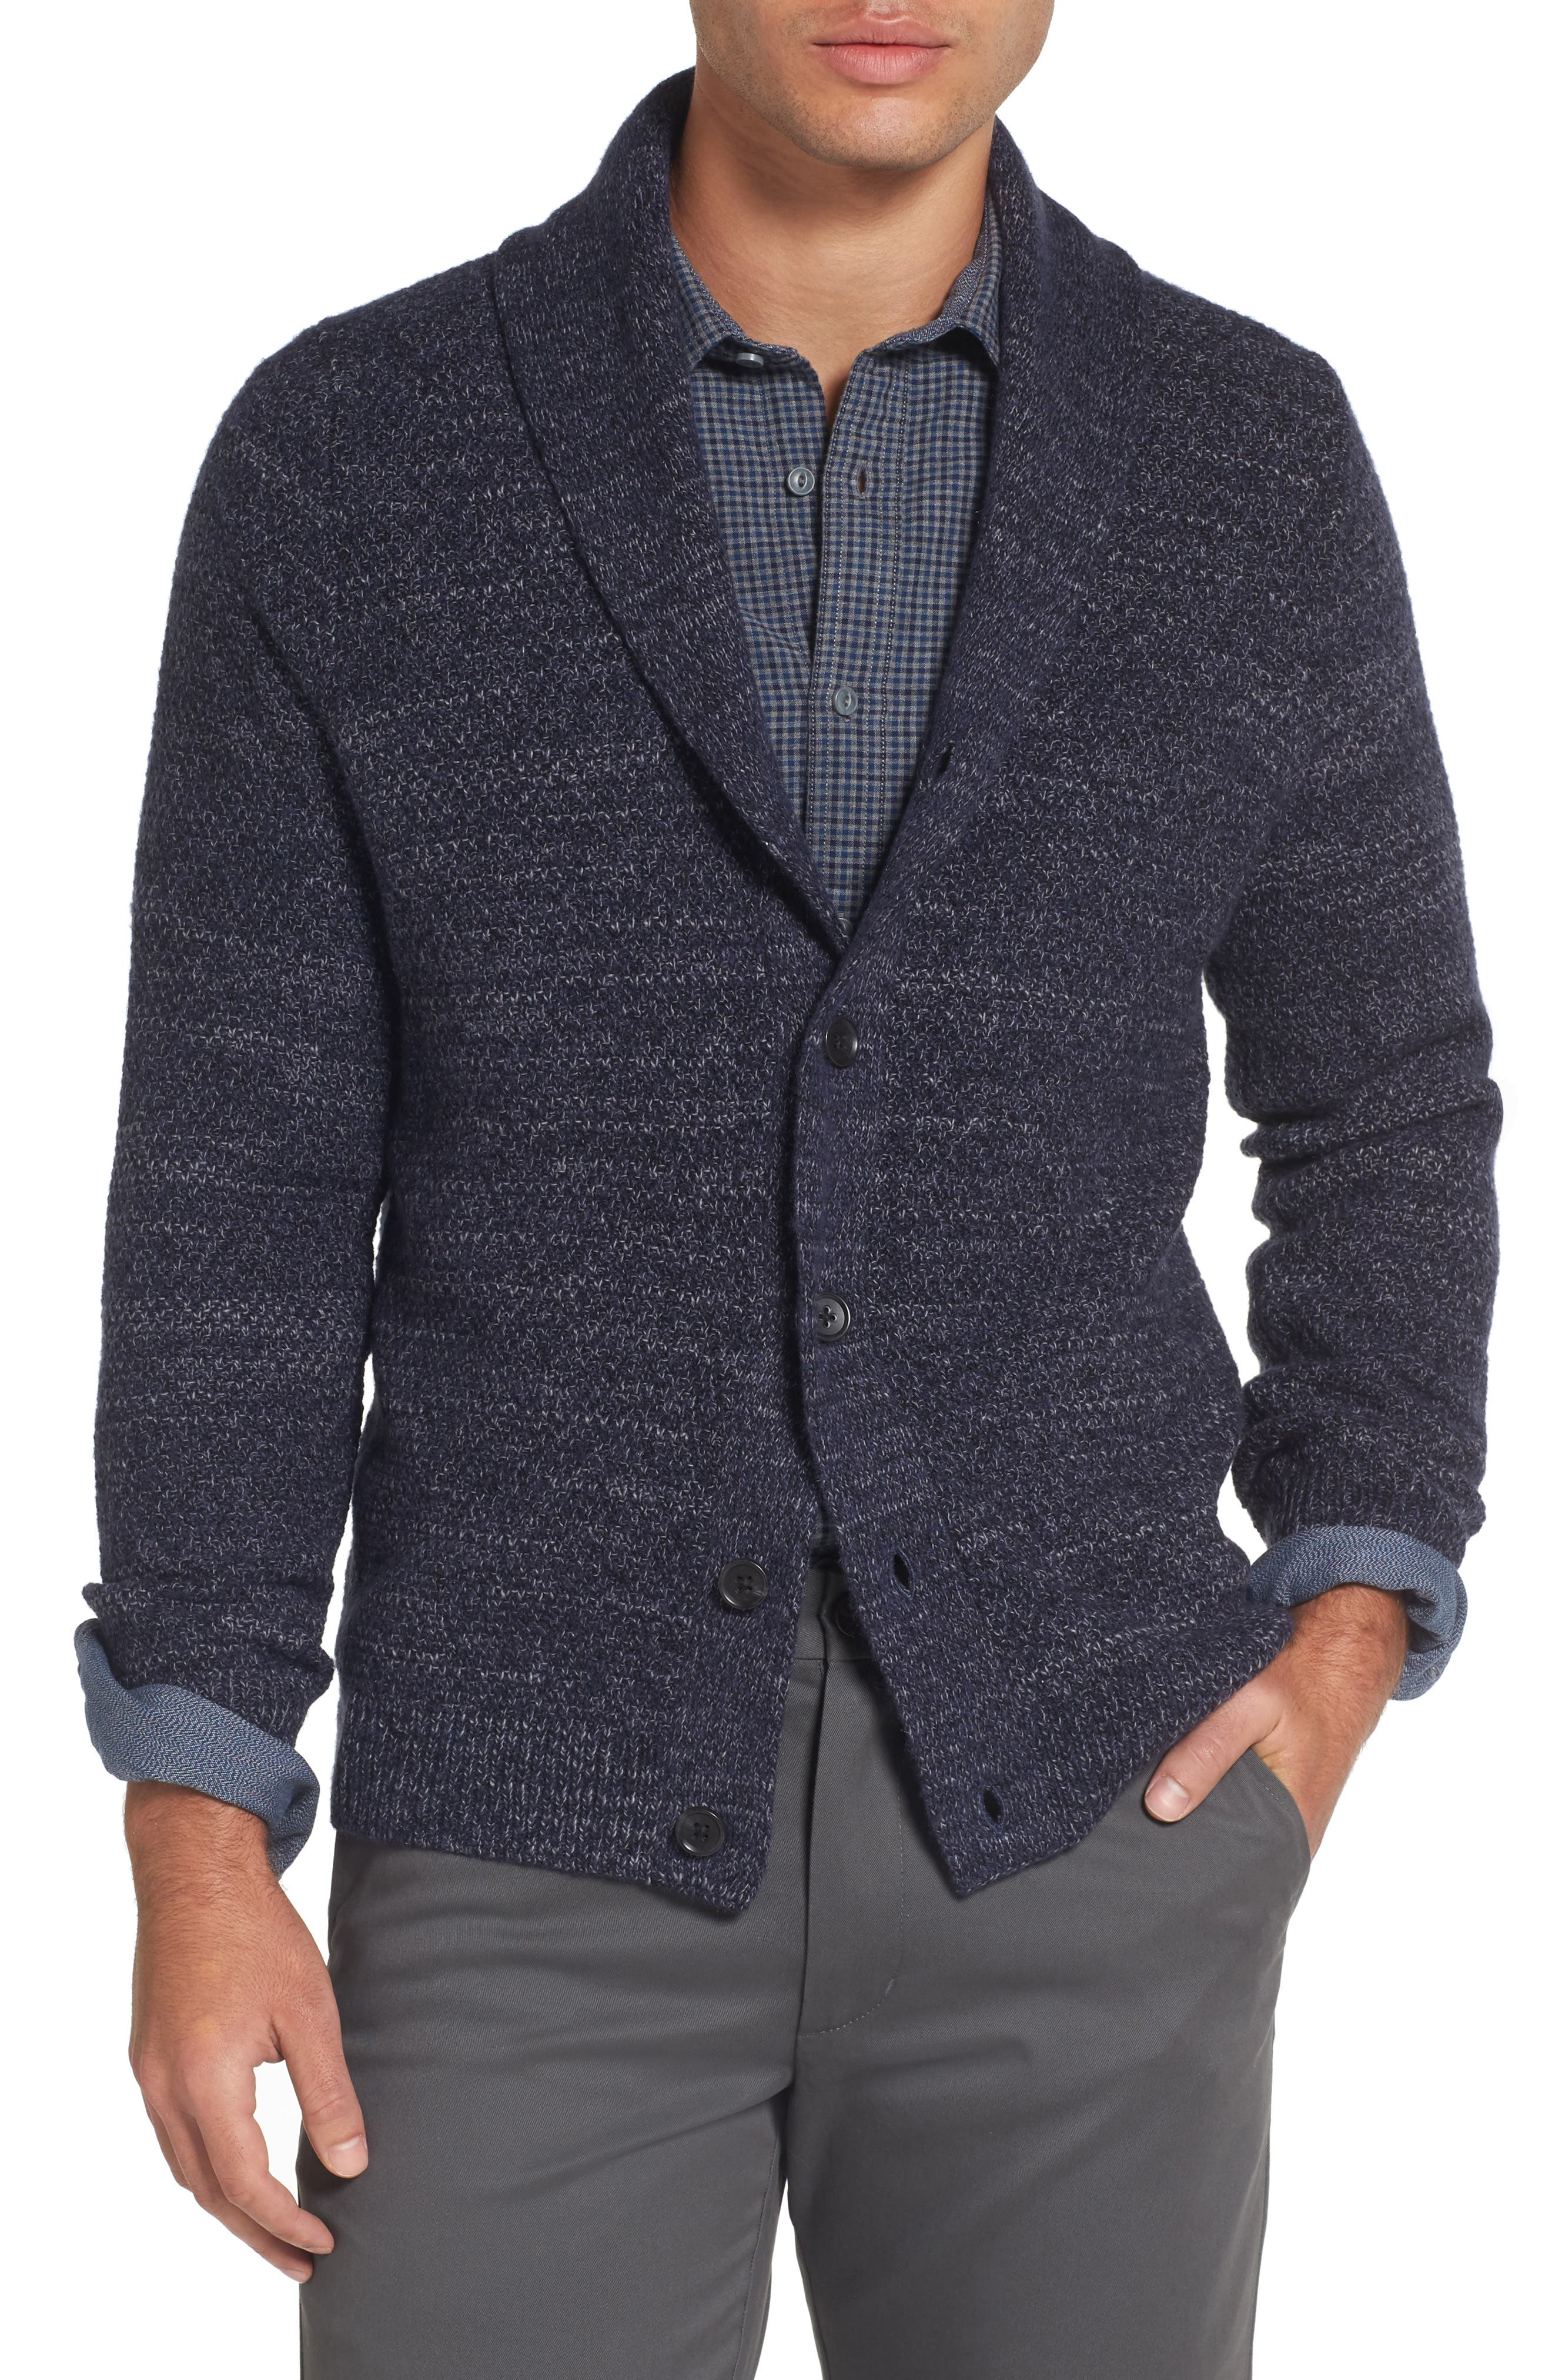 Shawl Collar Cardigan,                             Main thumbnail 1, color,                             Navy Iris Combo